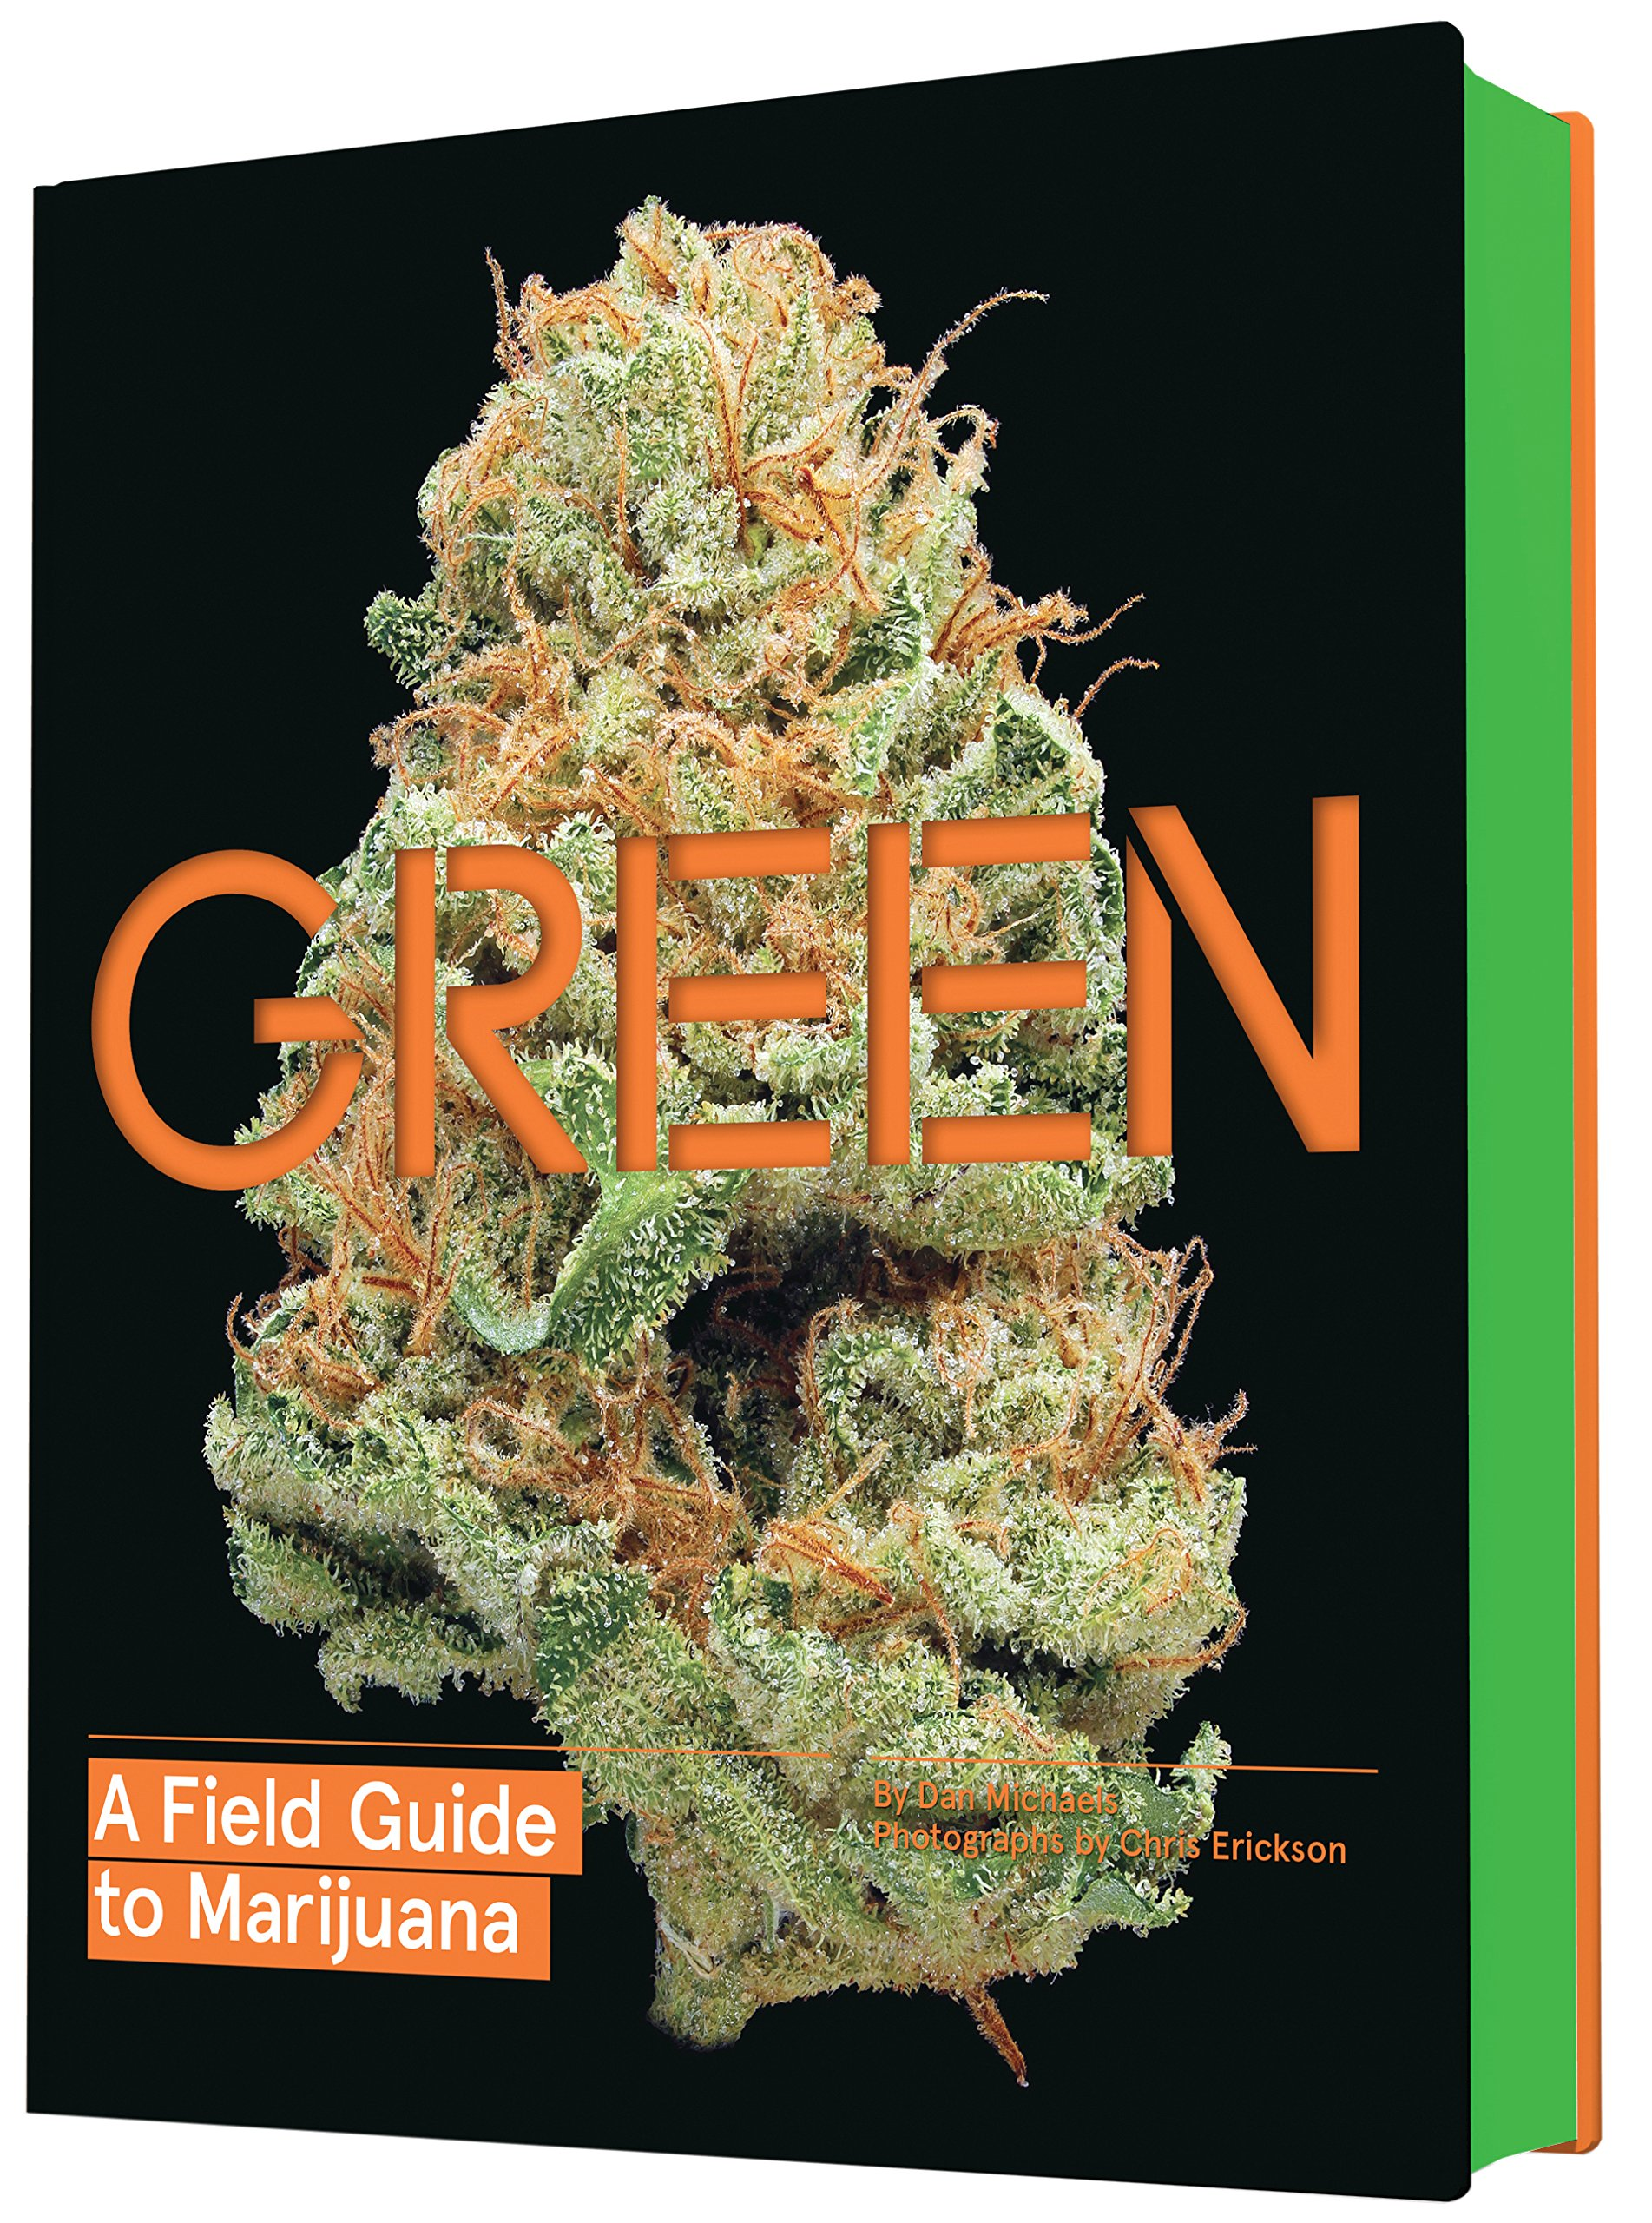 5. Green: A Field Guide to Marijuana